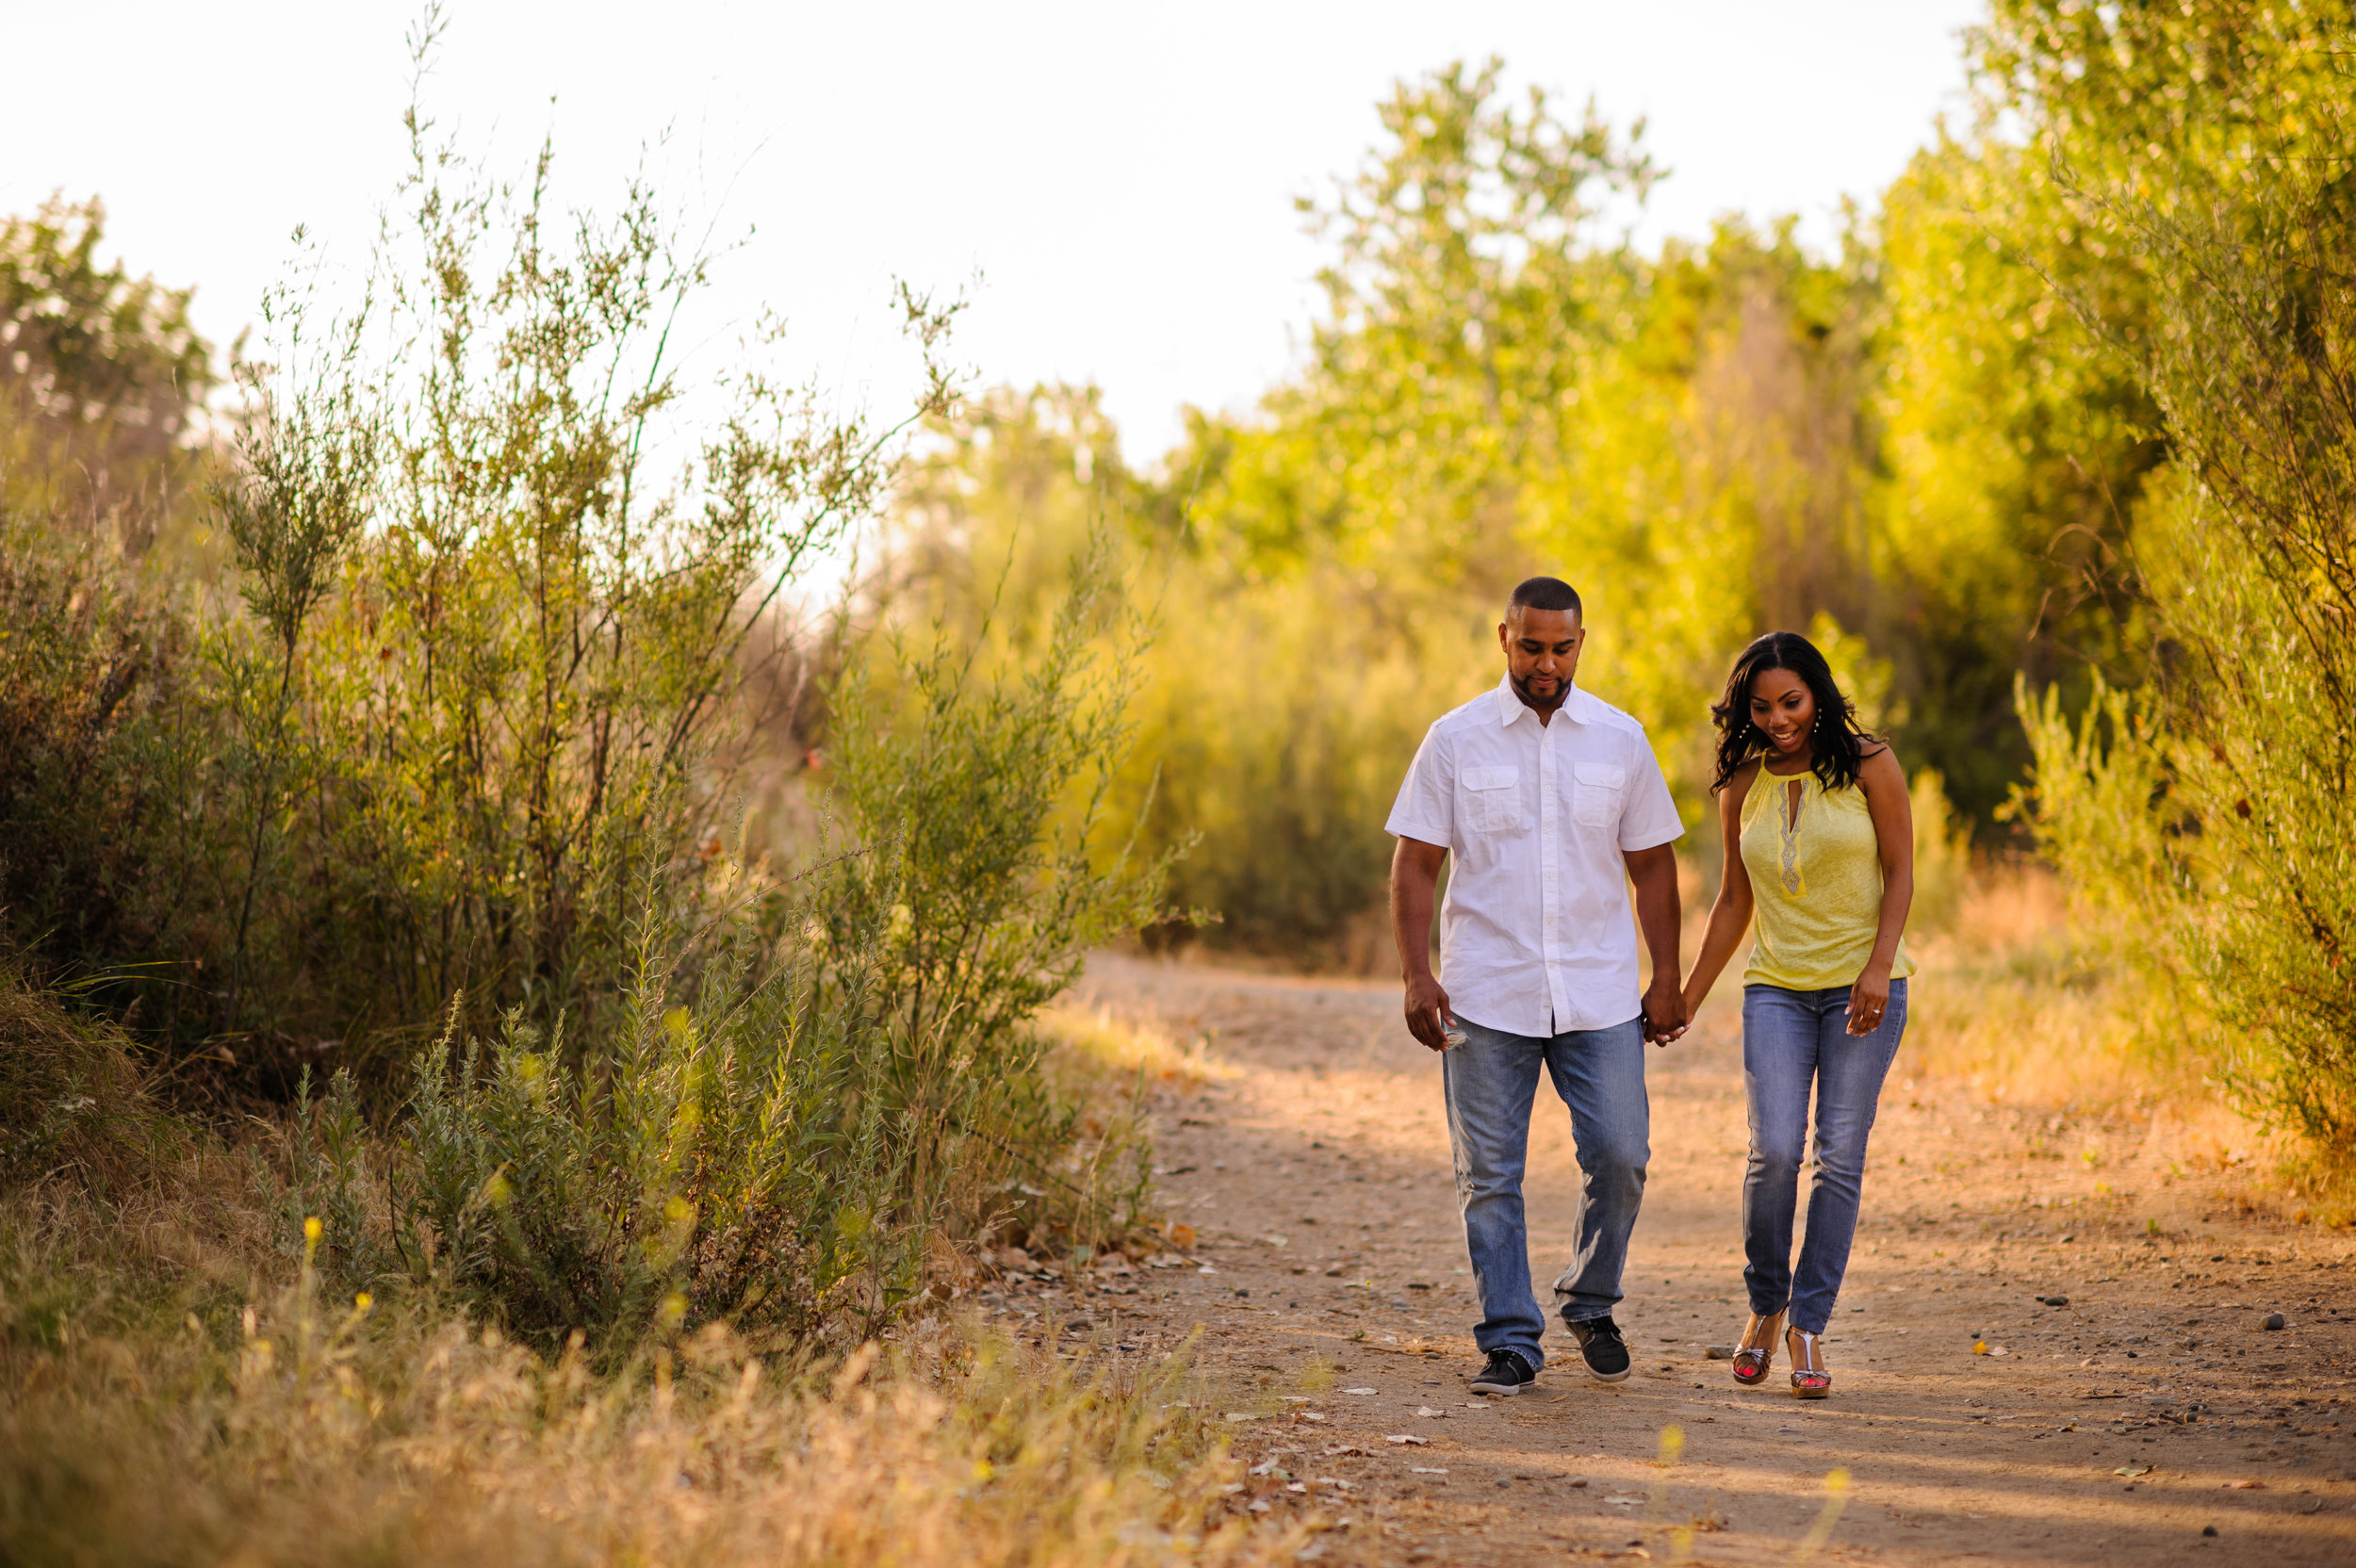 trina-cj-005-sacramento-engagement-wedding-photographer-katherine-nicole-photography.JPG